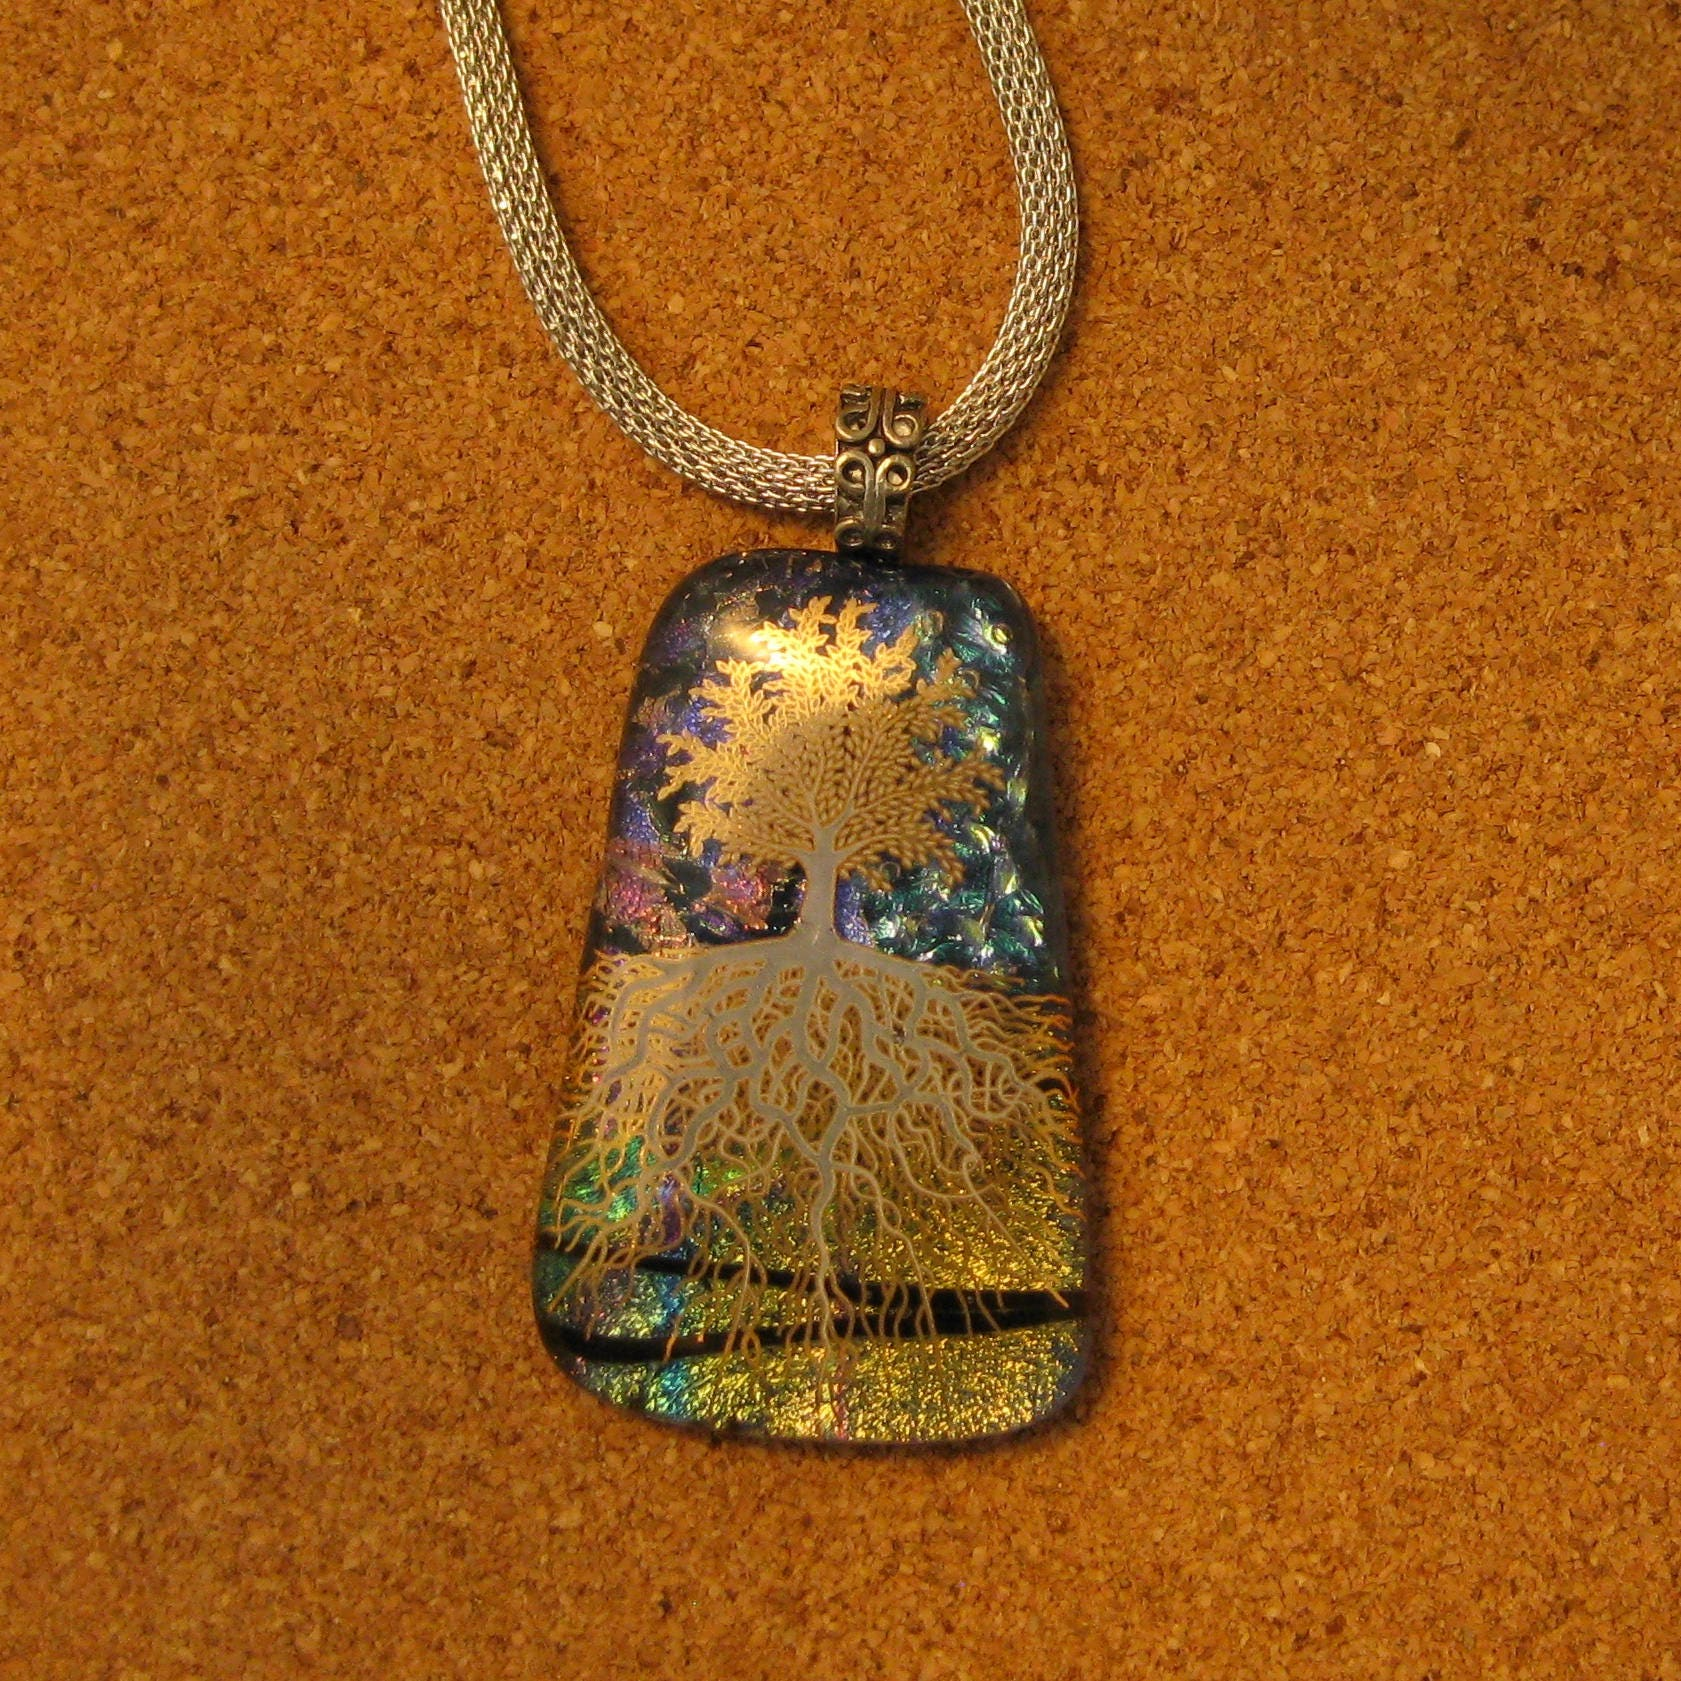 fullxfull pendantfused gold jewelry pendant and pendantdichroic il textured glass black fused necklace purple p dichroic